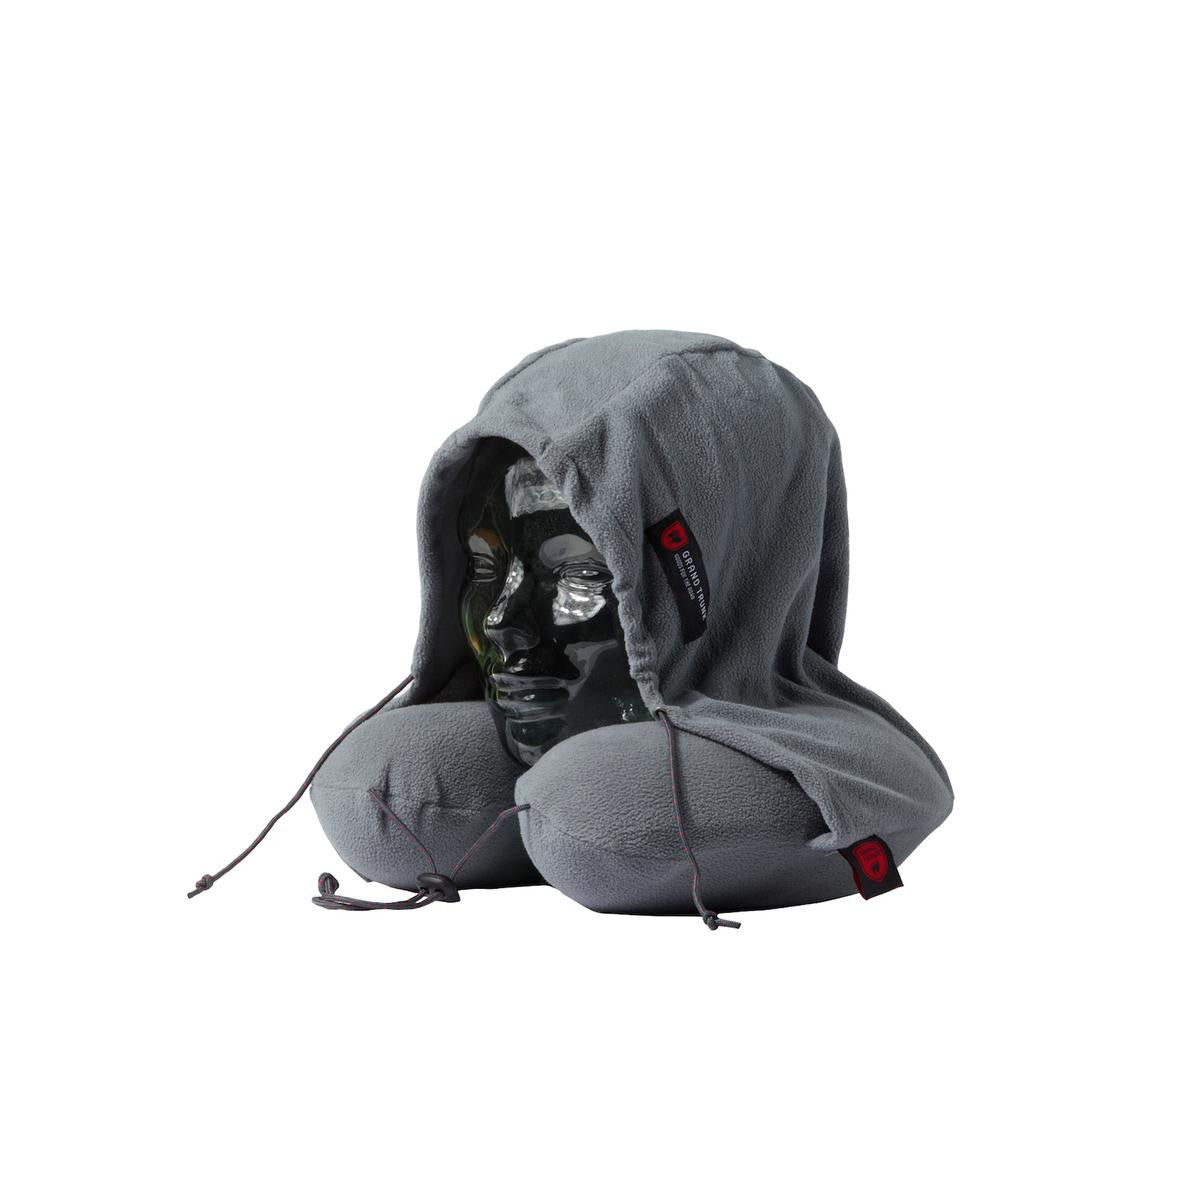 Grand Trunk Hooded Travel Pillow